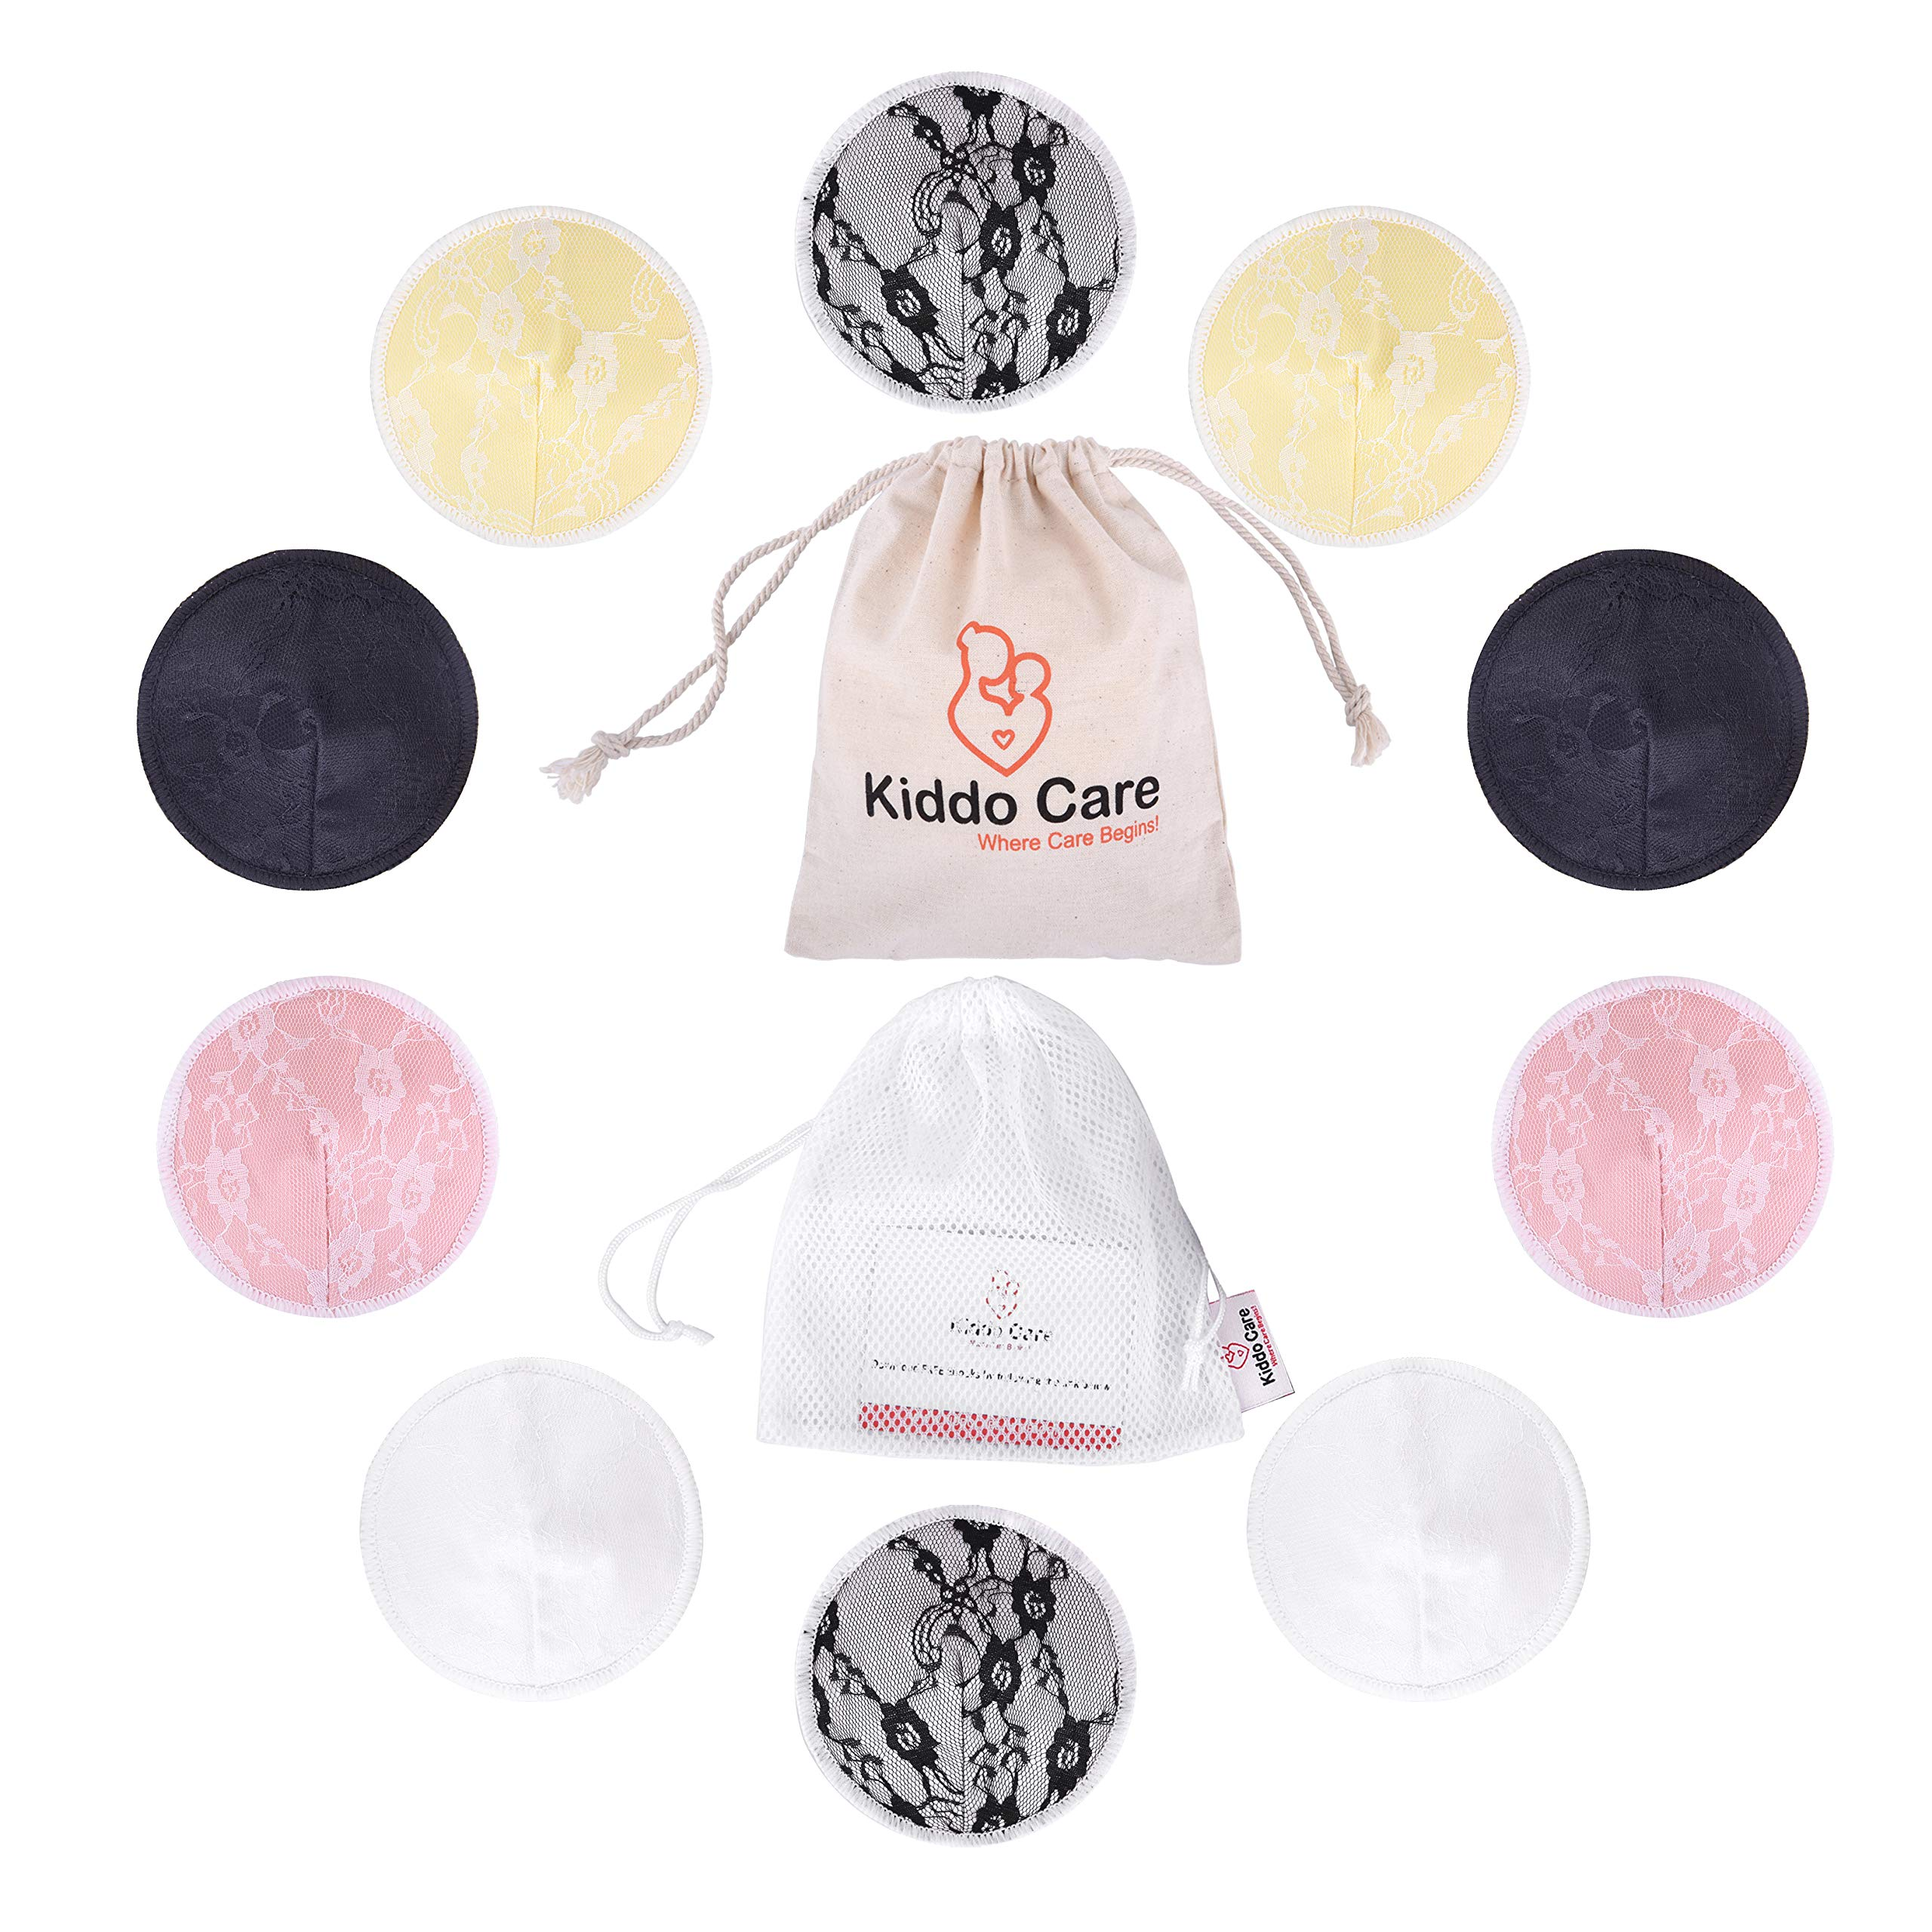 BEST Washable Organic Bamboo Nursing Pads -8 PACK Ultra soft Leakproof 4 pairs 2 FREE Ebooks !! Waterproof absorbent pads Colored- Reusable Breast Pads,Bra pads